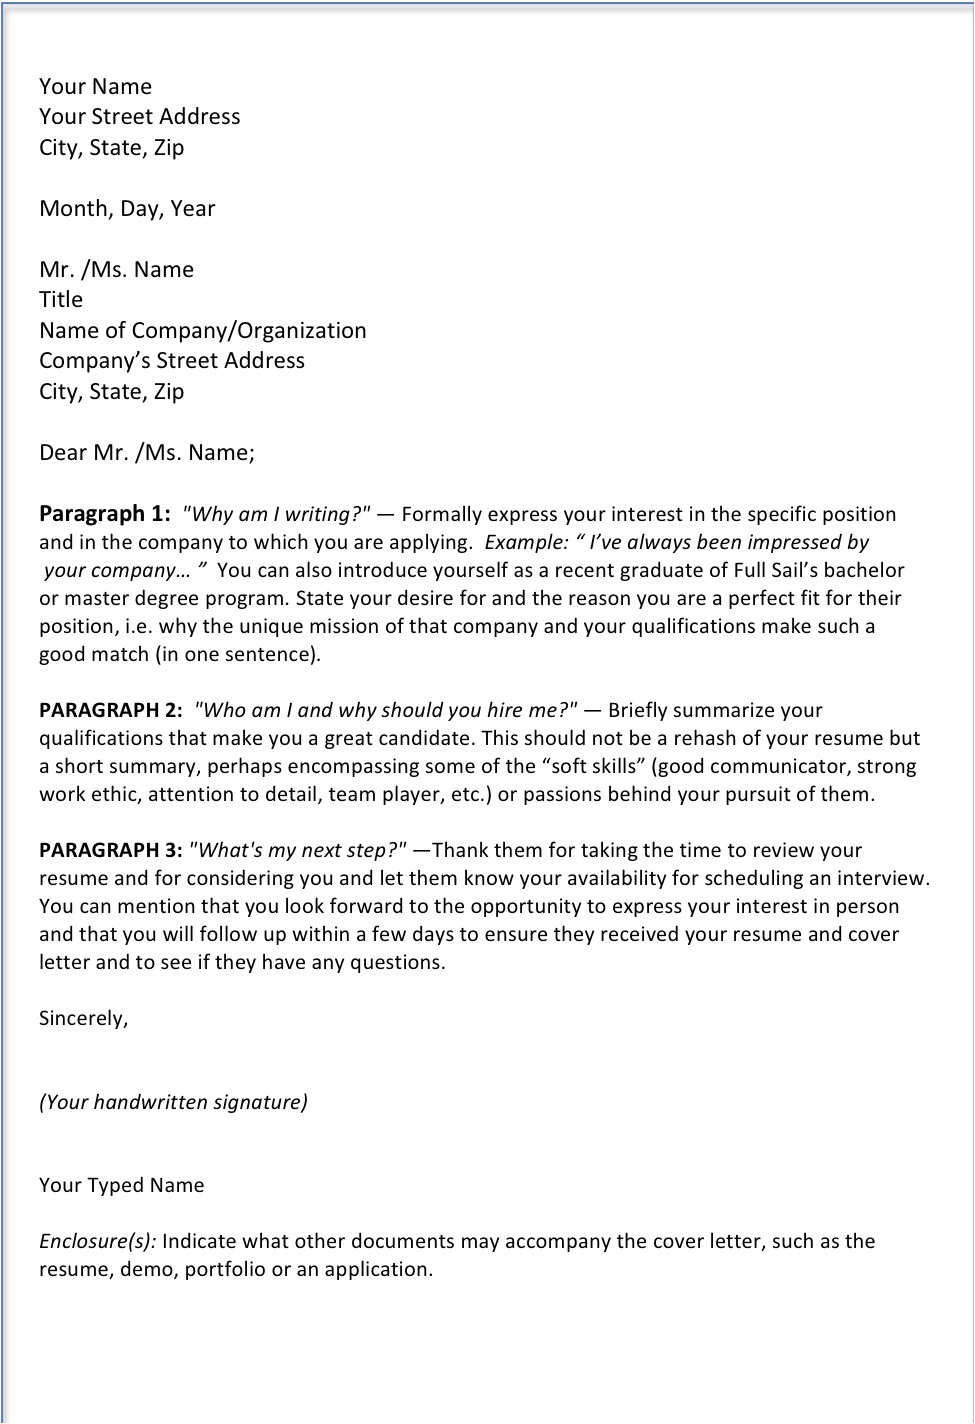 what should a cover letter for job application include